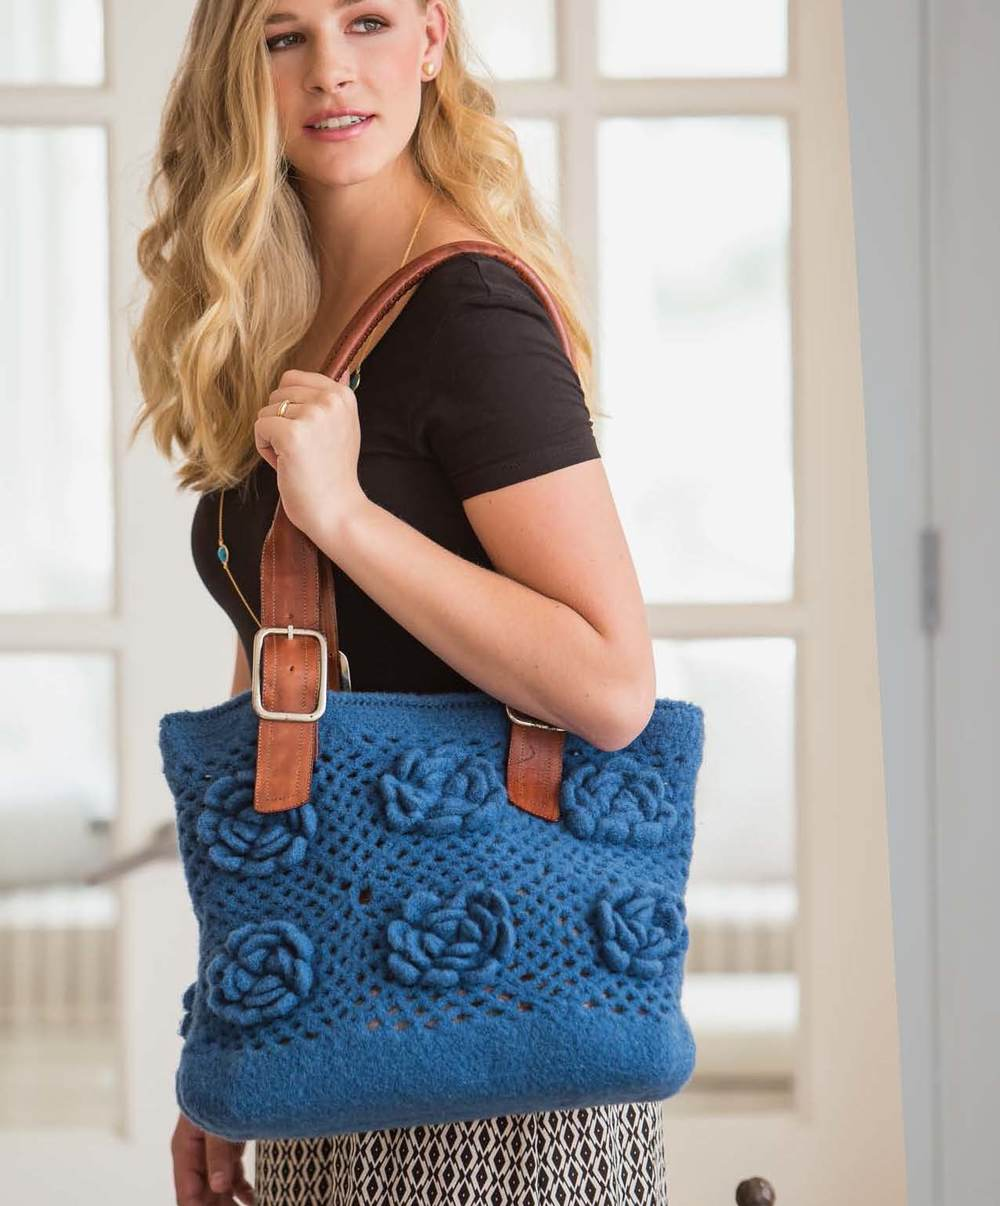 Crochet So Lovely -  Felted Flower Bag beauty shot.jpg